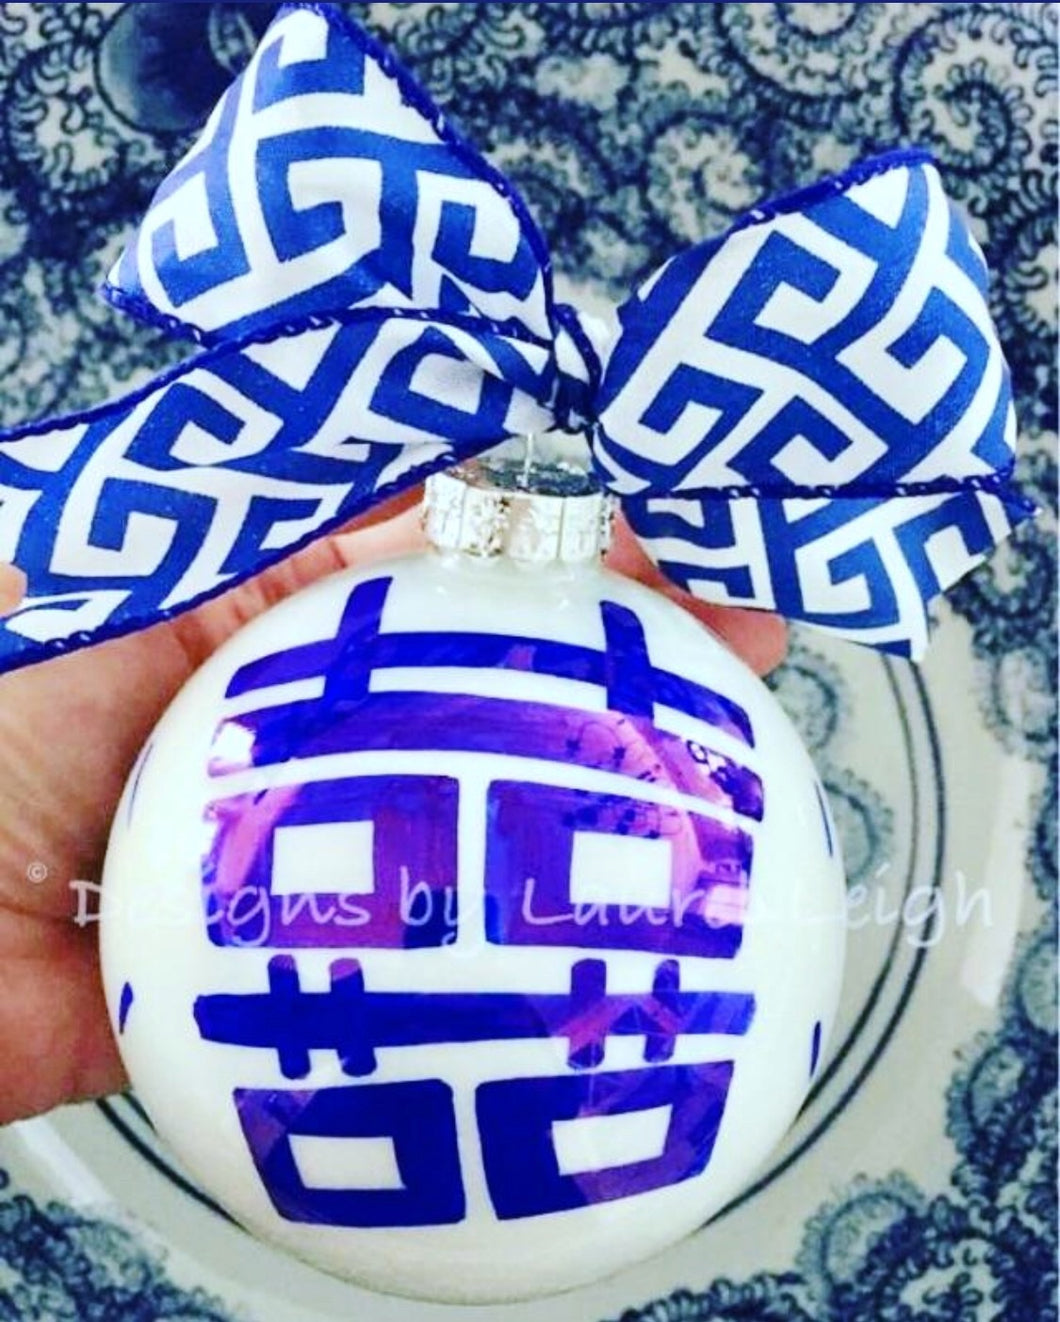 Chinoiserie Hand Painted JUMBO SIZE Christmas Ornament - Pagoda or Double Happiness Symbol Designs - Designs by Laurel Leigh